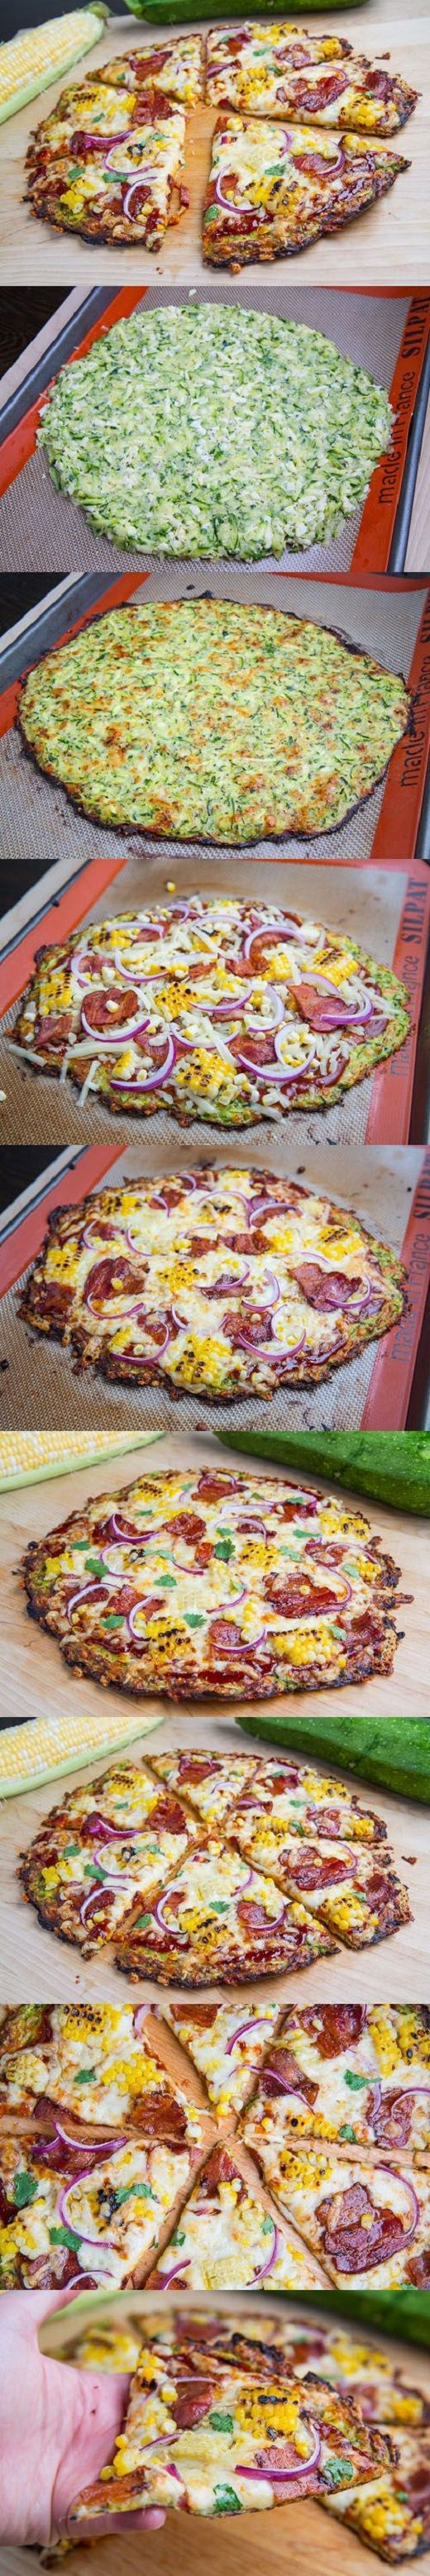 Zucchini Pizza Crust - Low Carb crust. Use your favorite low carb pizza sauce and leave off the corn.